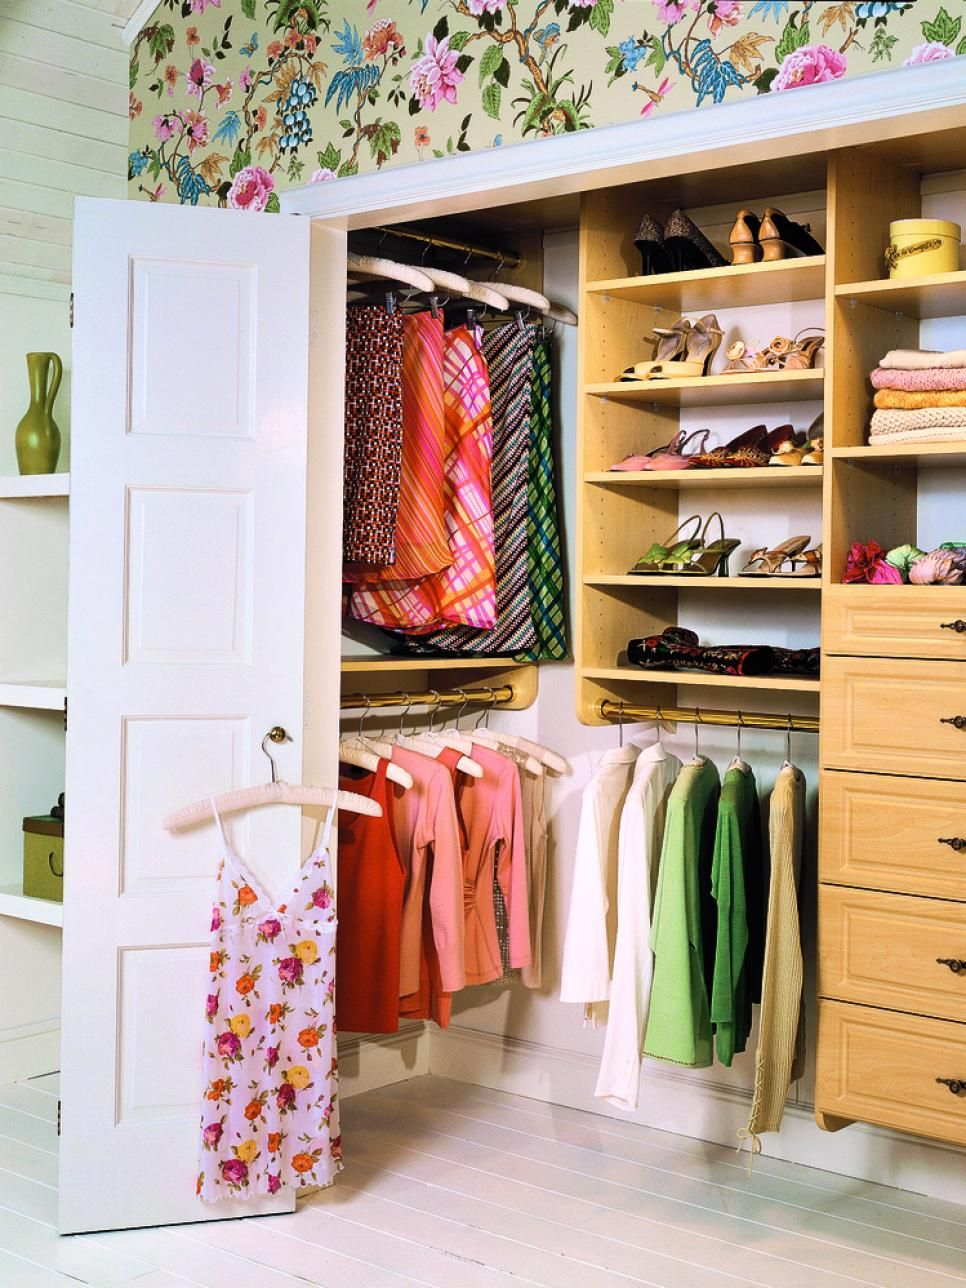 Browse Closet Door Options That Add Functionality And Enhance Design